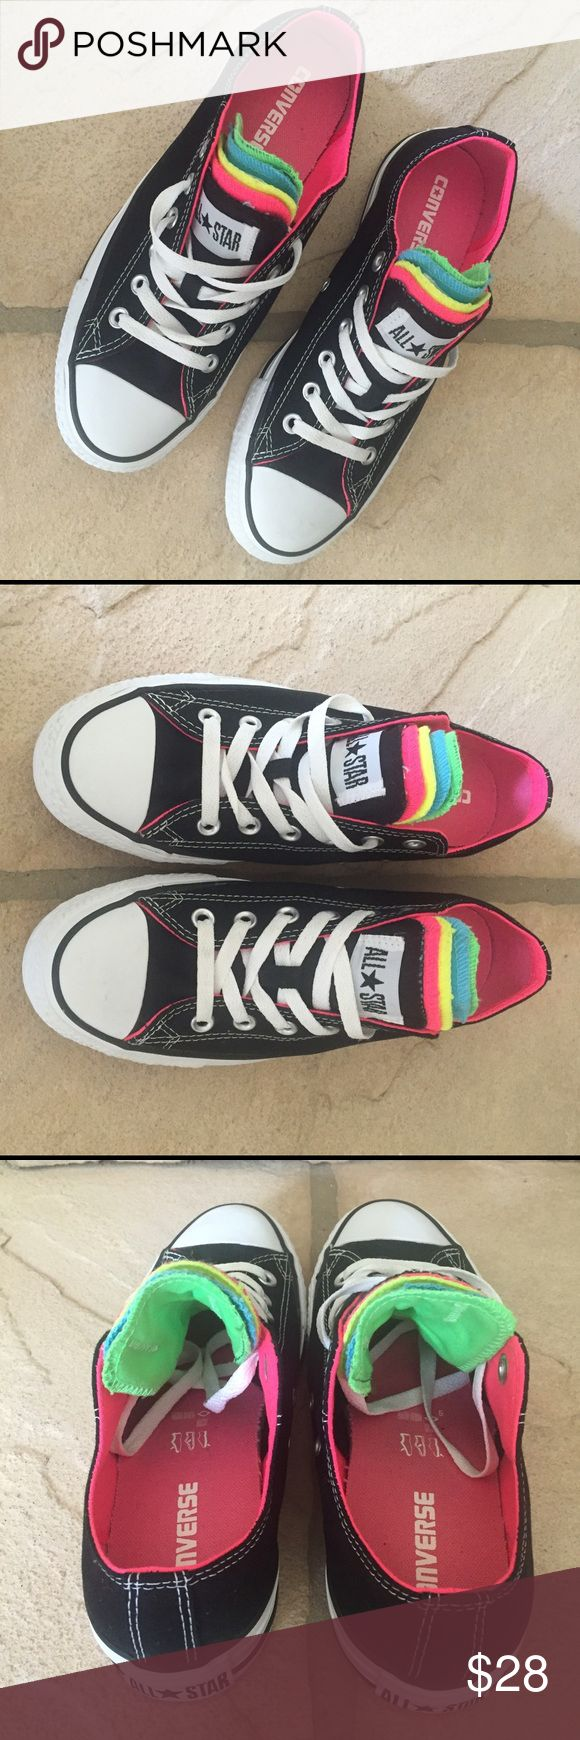 LADIES CONVERSE W/FIVE VARIOUS COLORED TONGUES Converse black low tops with 5 different color tongues (black, pink, neon yellow, blue & green). VGUC clean inside and out. No rips, stains or tears.  SMOKE FREE HOME Converse Shoes Athletic Shoes